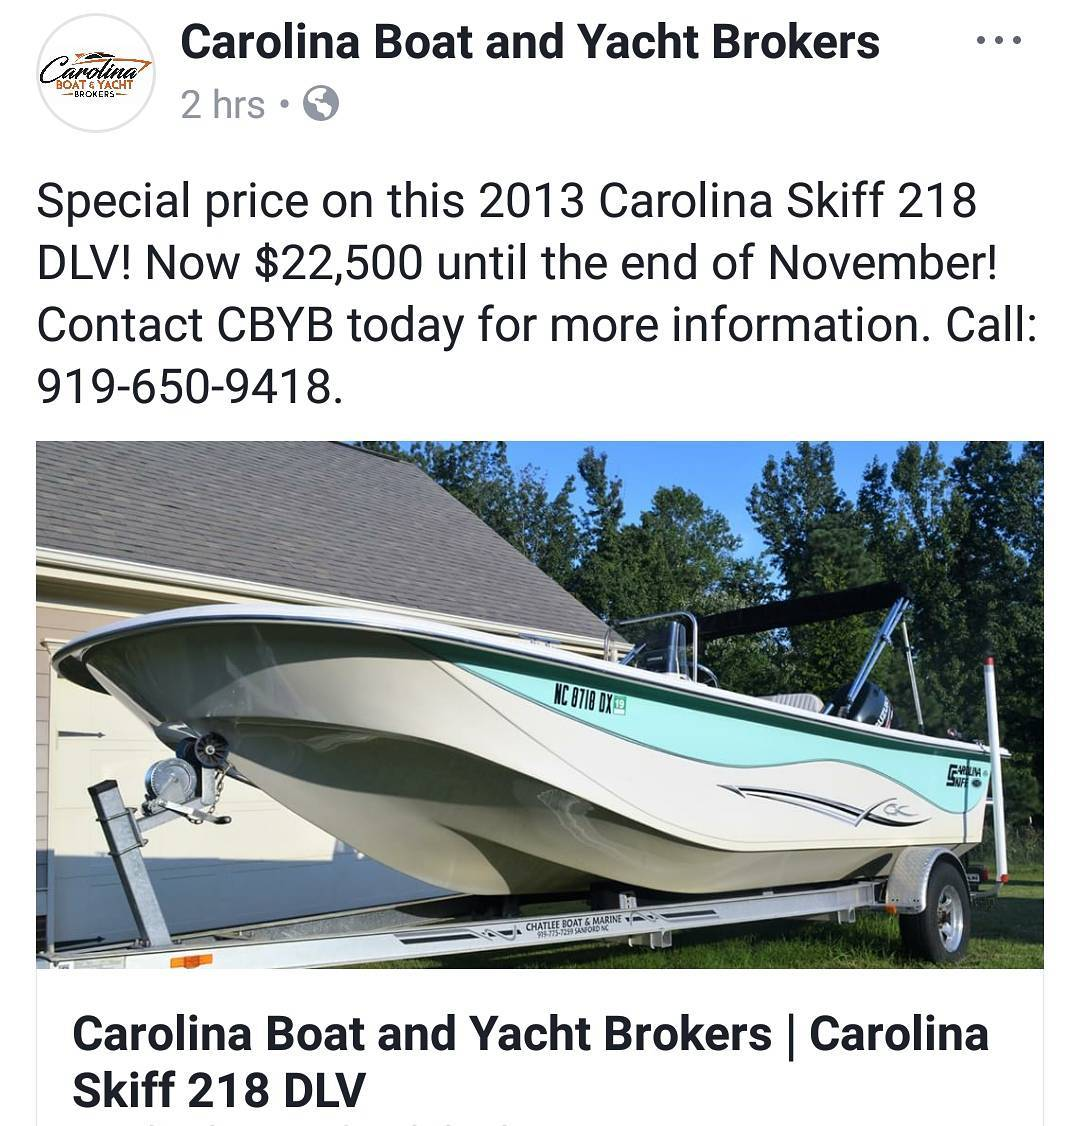 Carolina Skiff - New price for the rest of the month on this 2013 Carolina Skiff 218 DLV - Now $2...